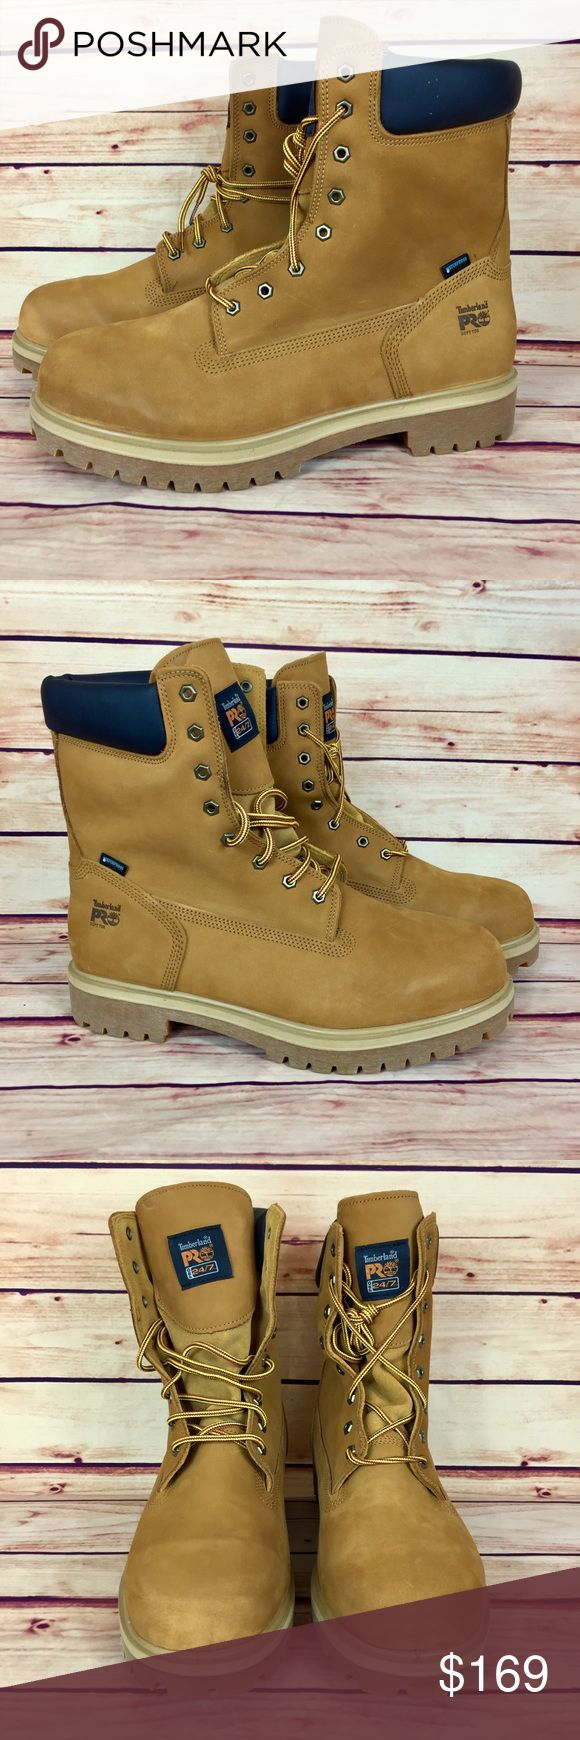 """NEW Timberland Pro Direct Attach 8"""" Soft Toe Boots Timberland Pro Direct Attach 8"""" Waterproof Soft Toe Boots  Condition: Brand New with Box  Style Number: 26011  Color: Wheat Nubuck   Size: 15W   🚫No Trades🚫 🚫No Spamming🚫 . . 📦📬 Fast Shipping! 📦📬 I Ship Same Day Orders Before 9am PST otherwise Next Business Day.  . . Timberland Shoes Boots"""